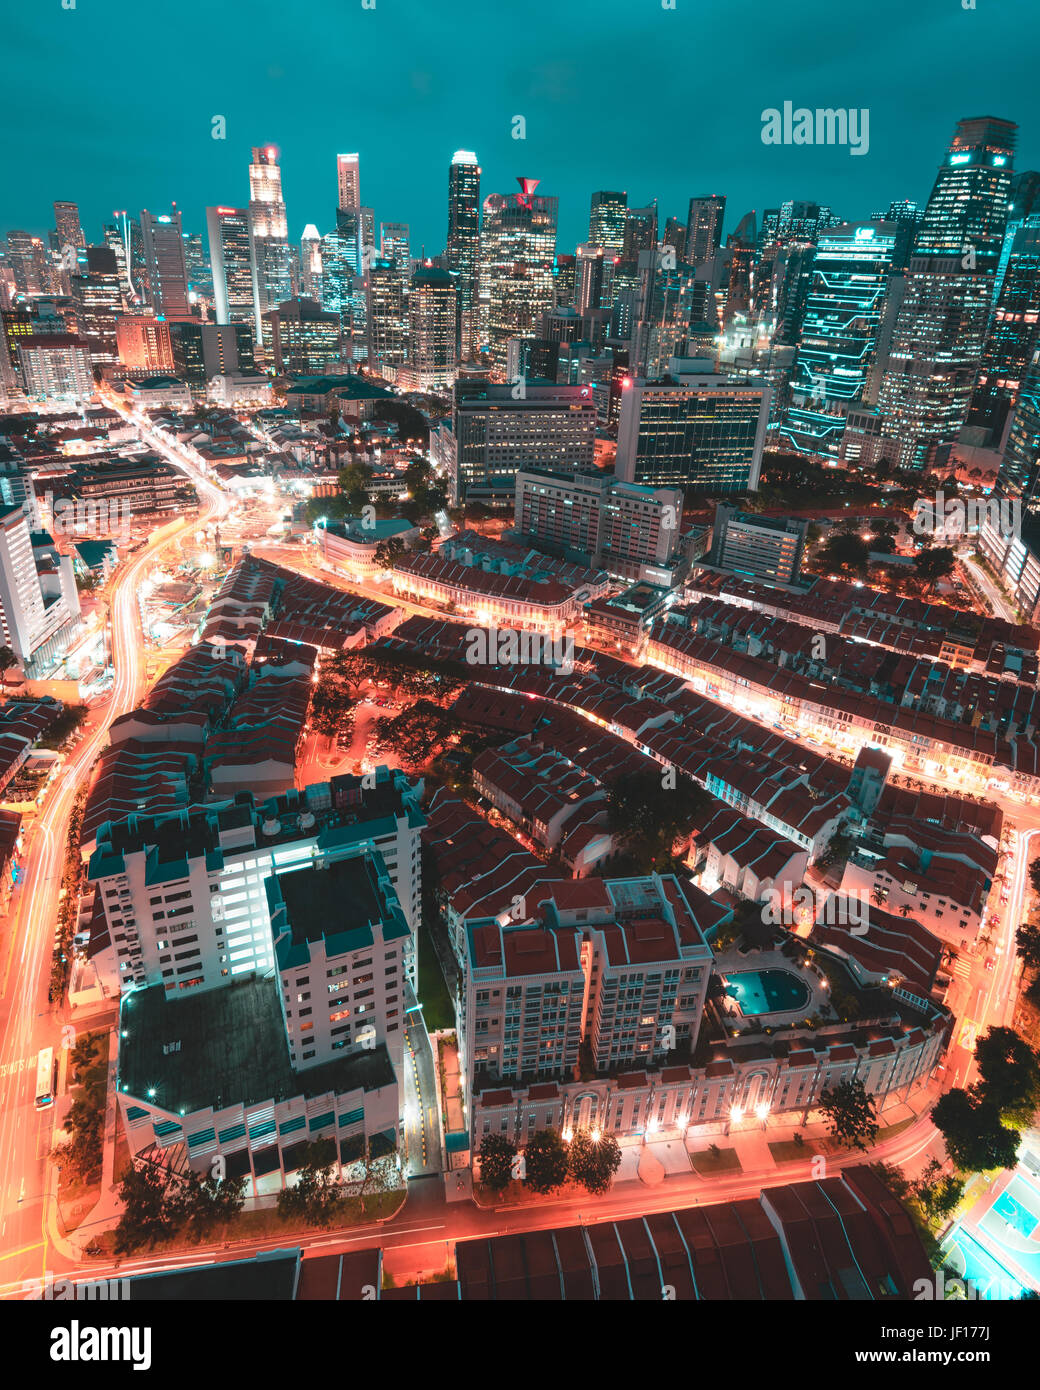 SINGAPORE: Cityscape at night. MIND-BLOWING images show what looks like a science fiction megacity is in fact the - Stock Image